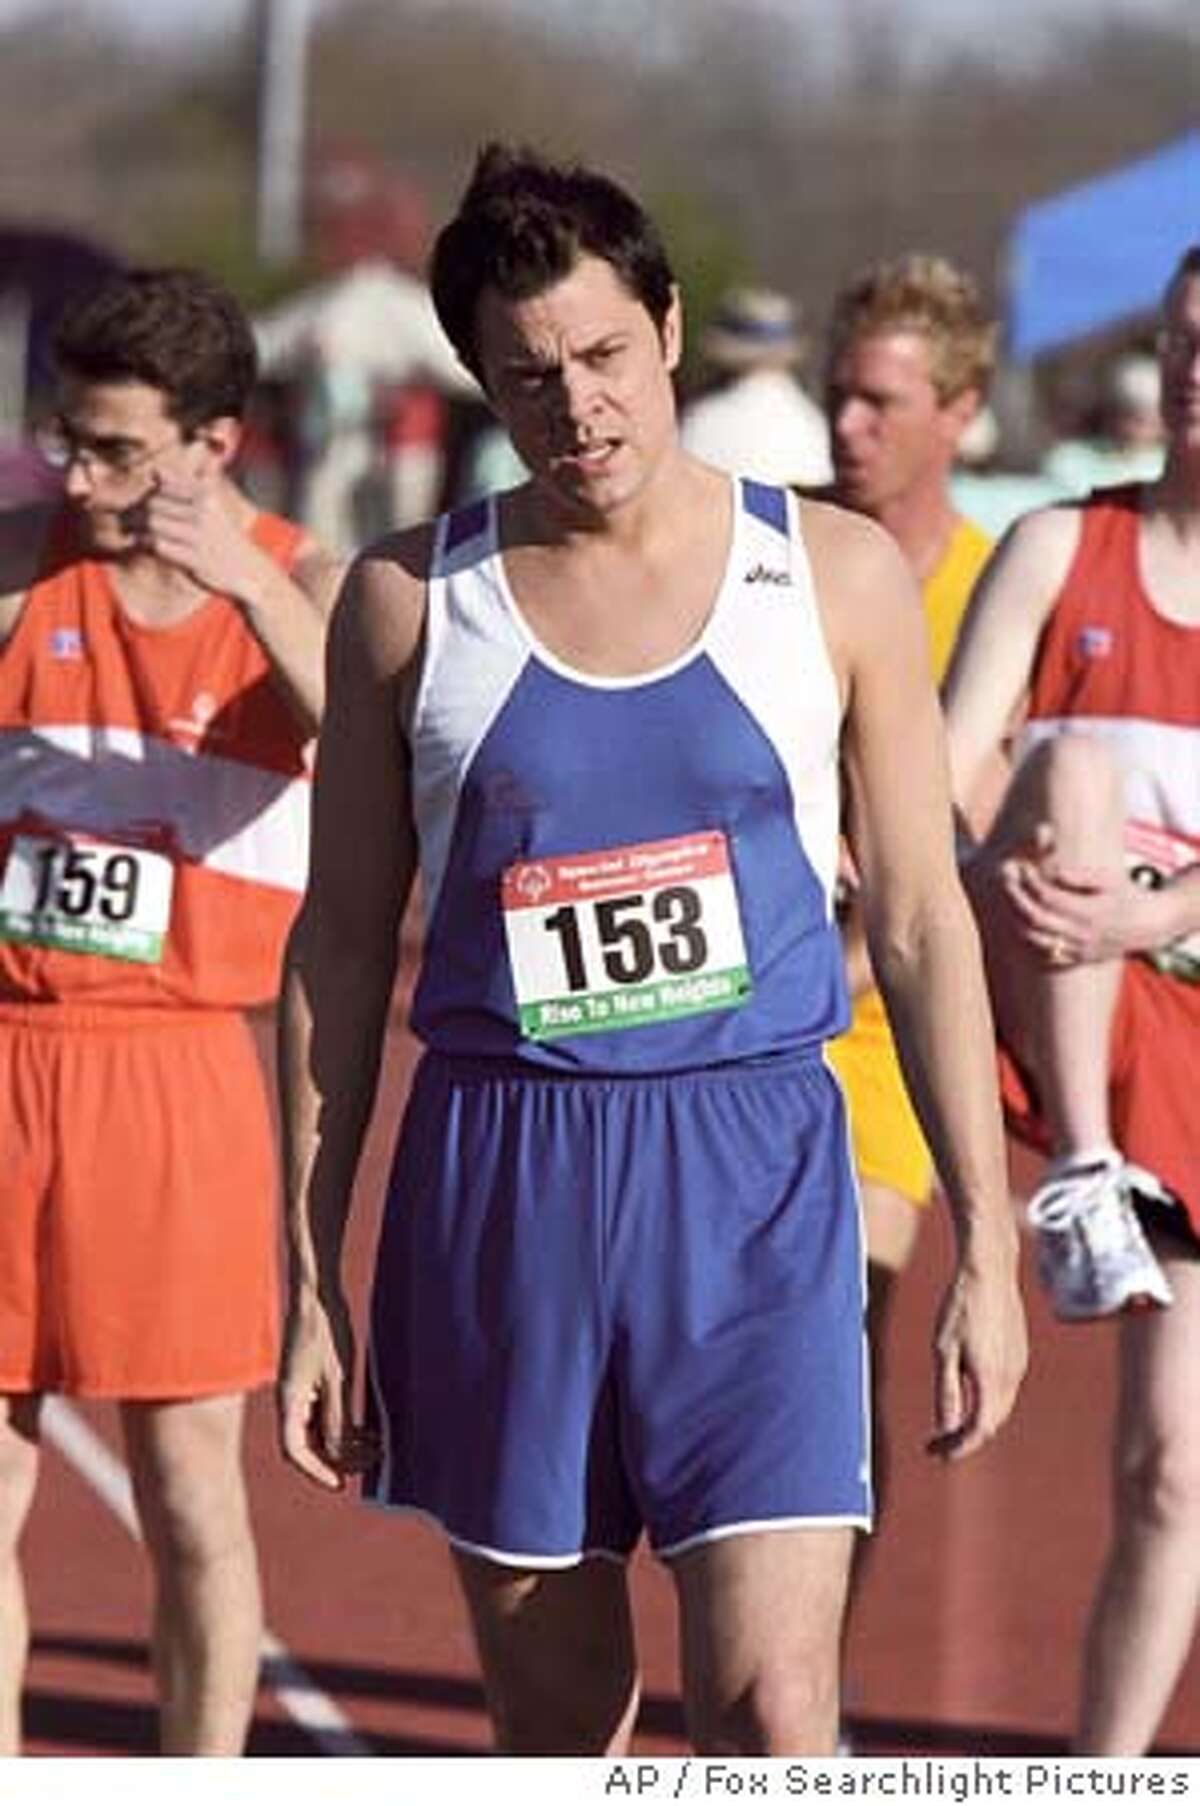 In this photo provided by Fox Searchlight Pictures, to pay off a debt, Steve (Johnny Knoxville), poses as a contestant in Special Olympics, hoping to dethrone reigning champion, in